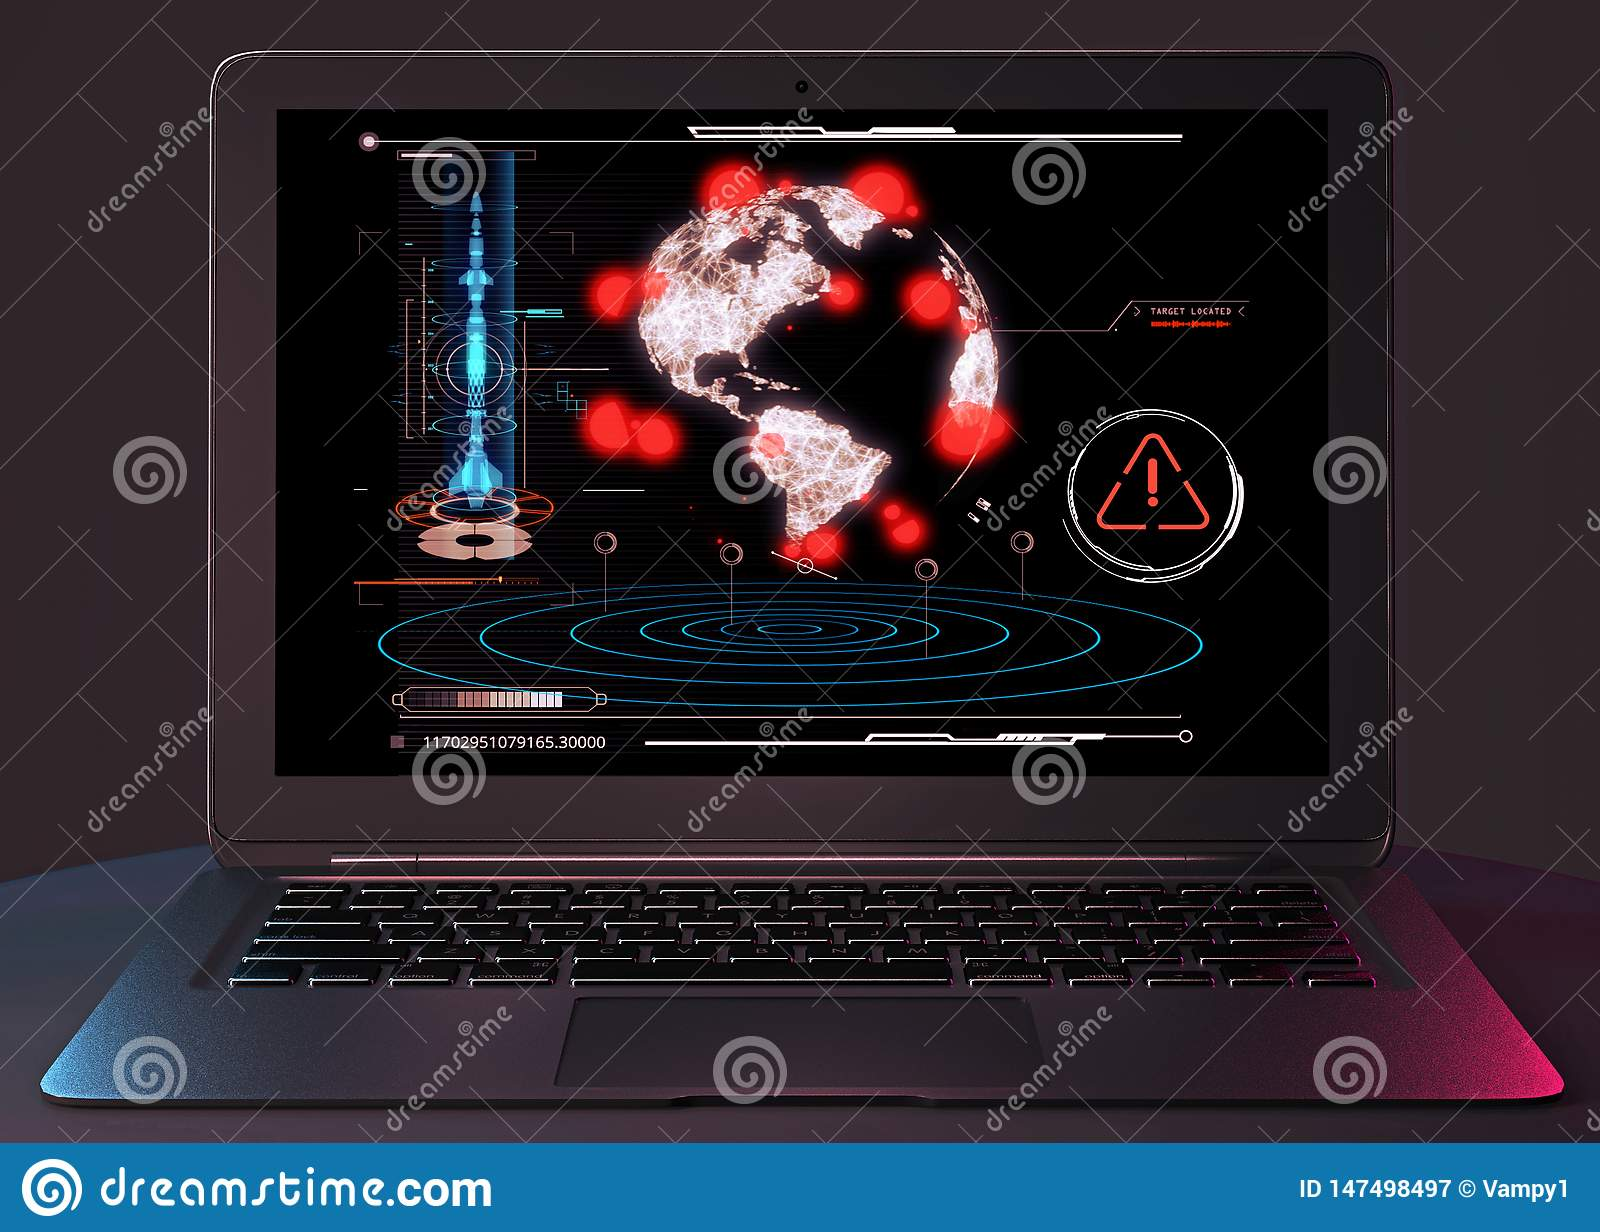 Nuclear attack, missile attack, sabotage, atomic weapons. Explosion of nuclear charges. Armed group. Computer hackers. HUD